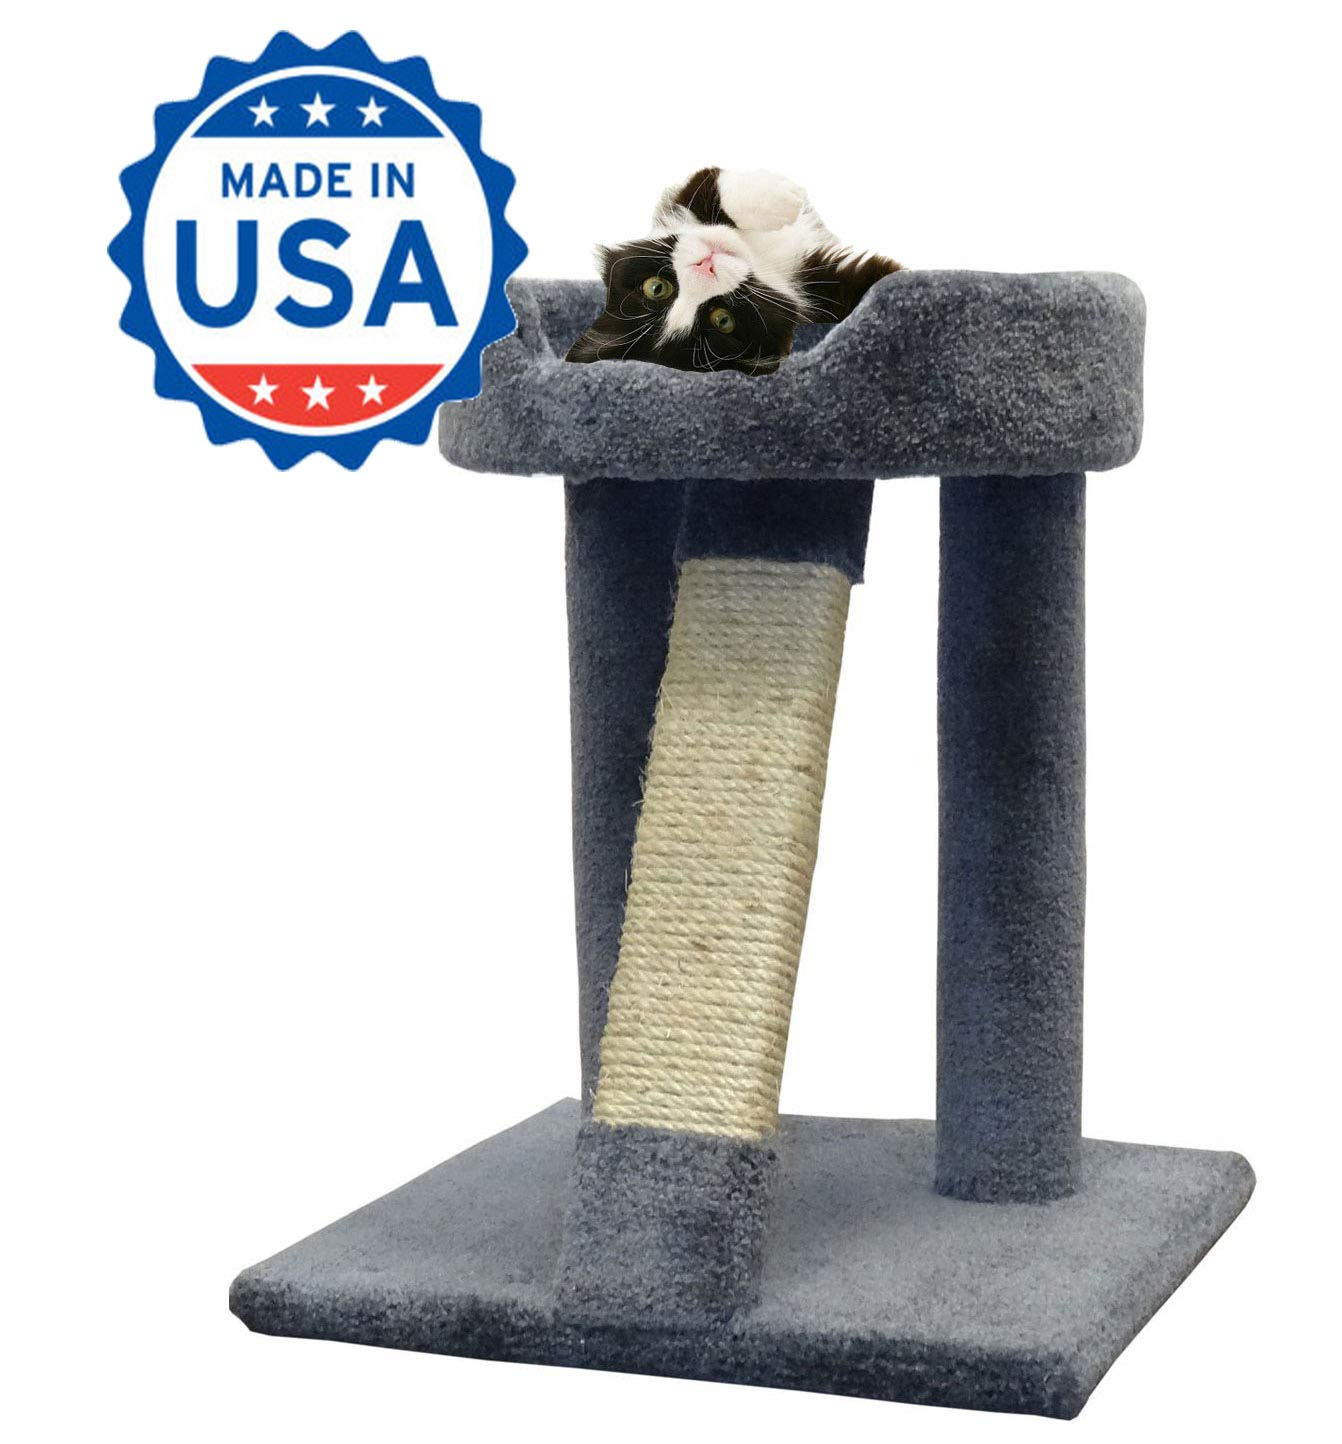 CozyCatFurniture 24 inches Wood Cat Scratcher, Made in USA with Large Bed, Unoiled Sisal Rope Pole, Gray Carpet by CozyCatFurniture